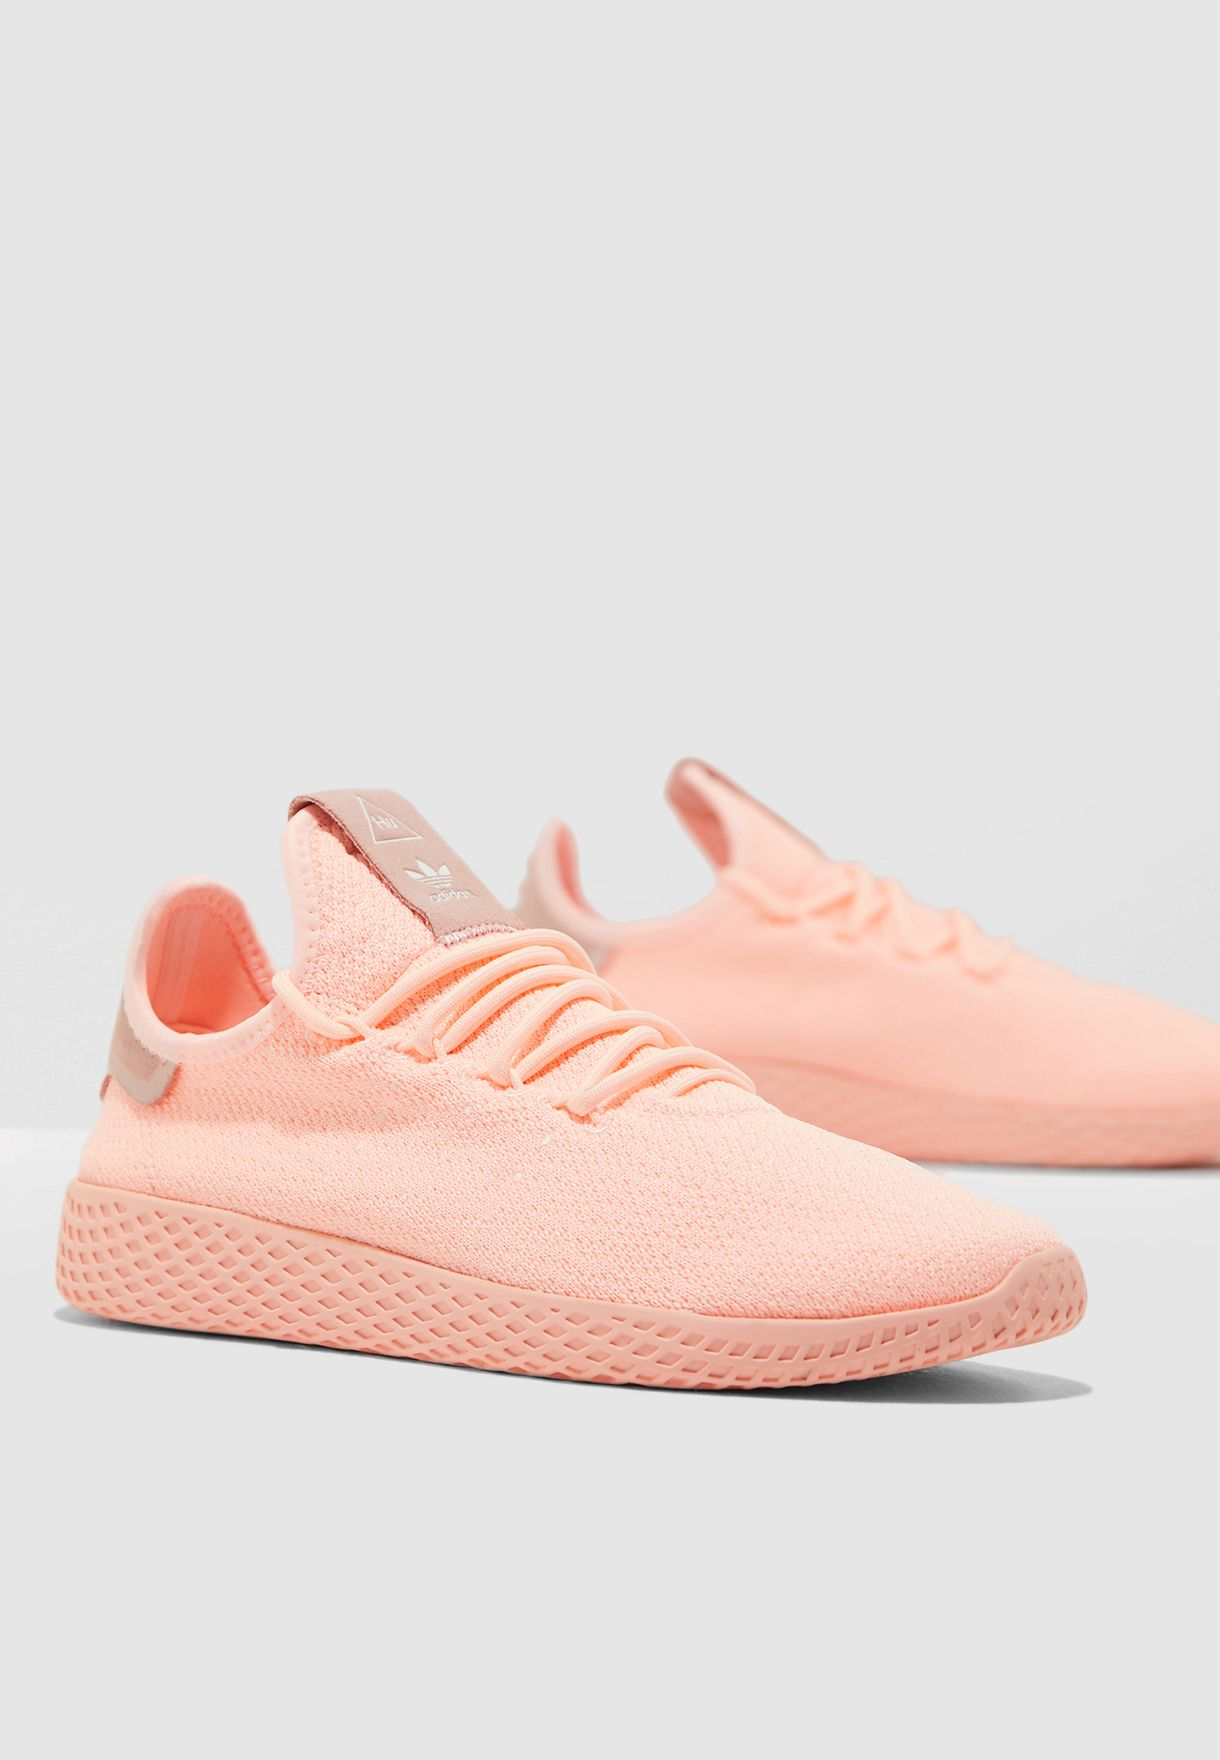 8c0d91354 Shop adidas Originals pink Pharrell Williams Tennis HU D96551 for ...